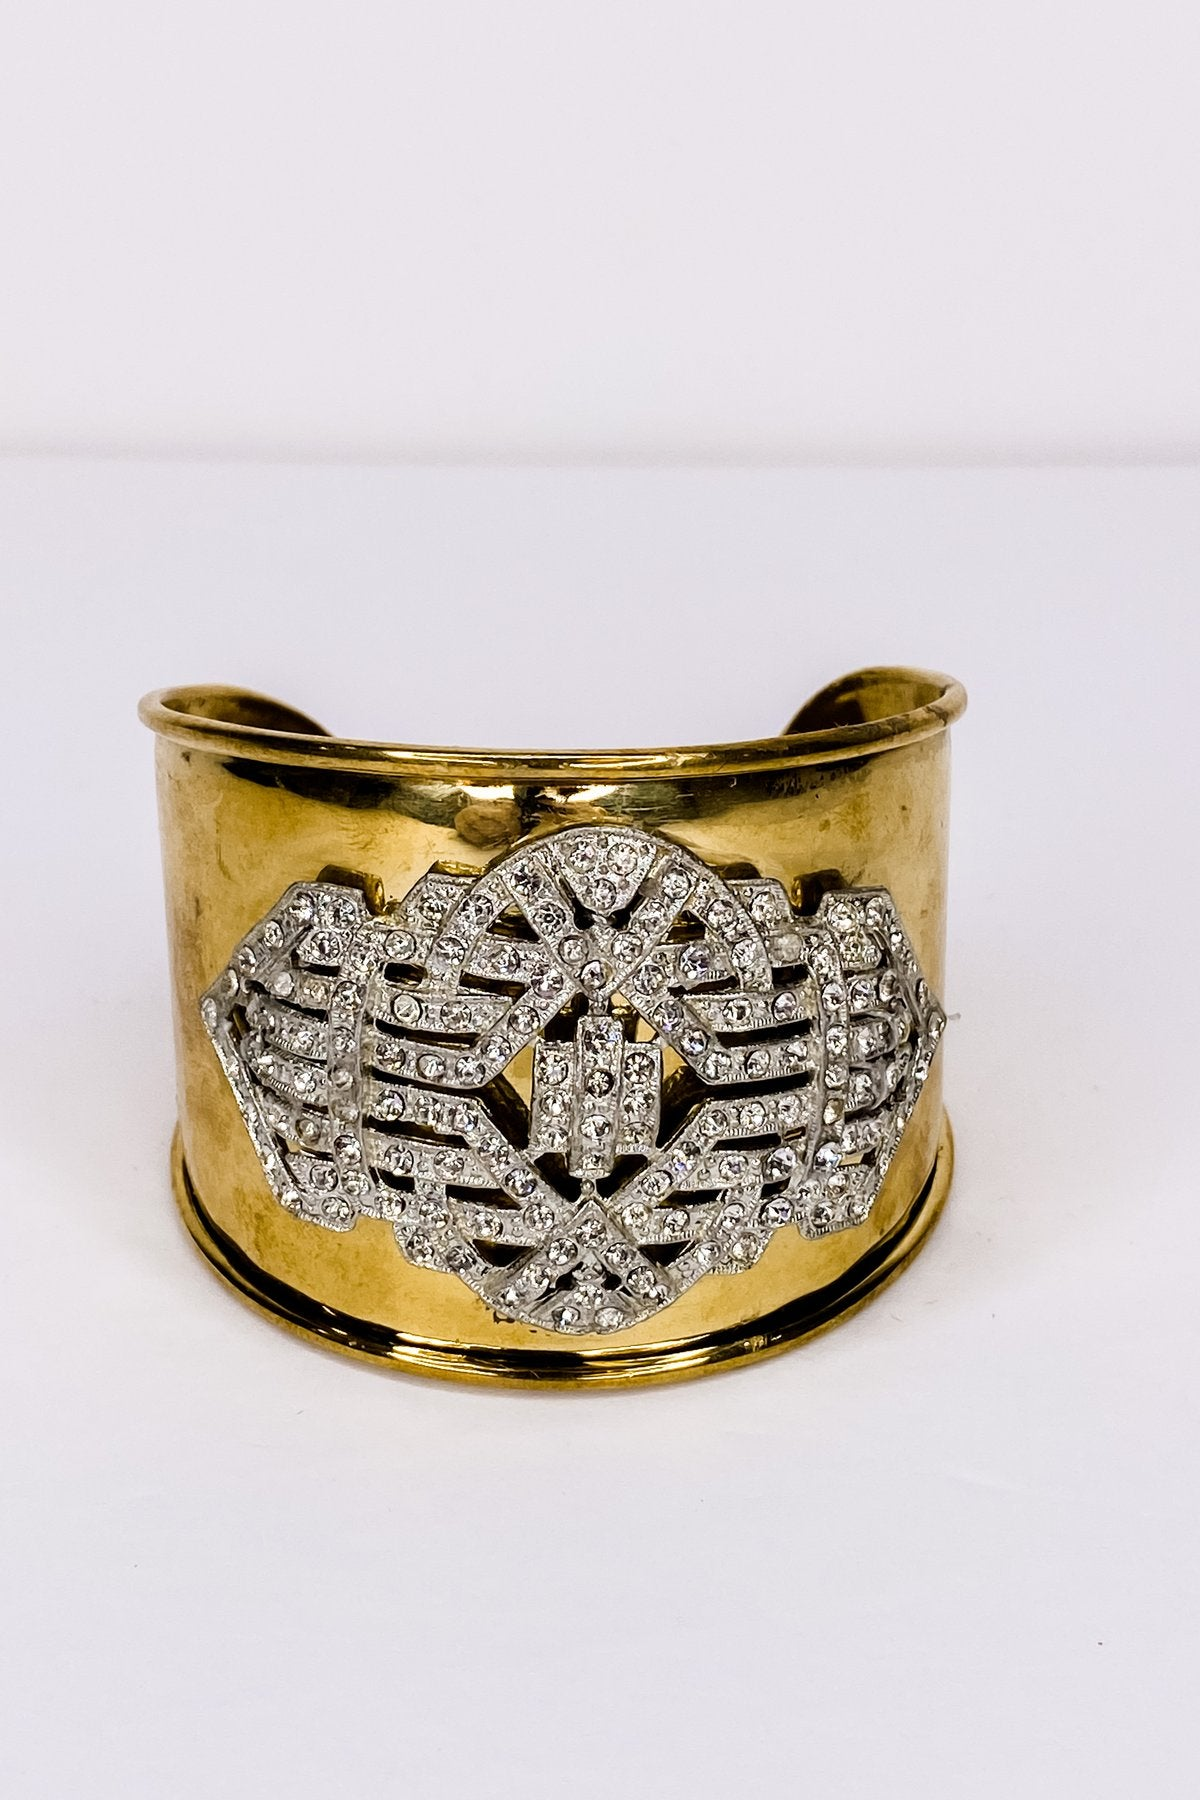 Vintage-inspired jewelry cuff